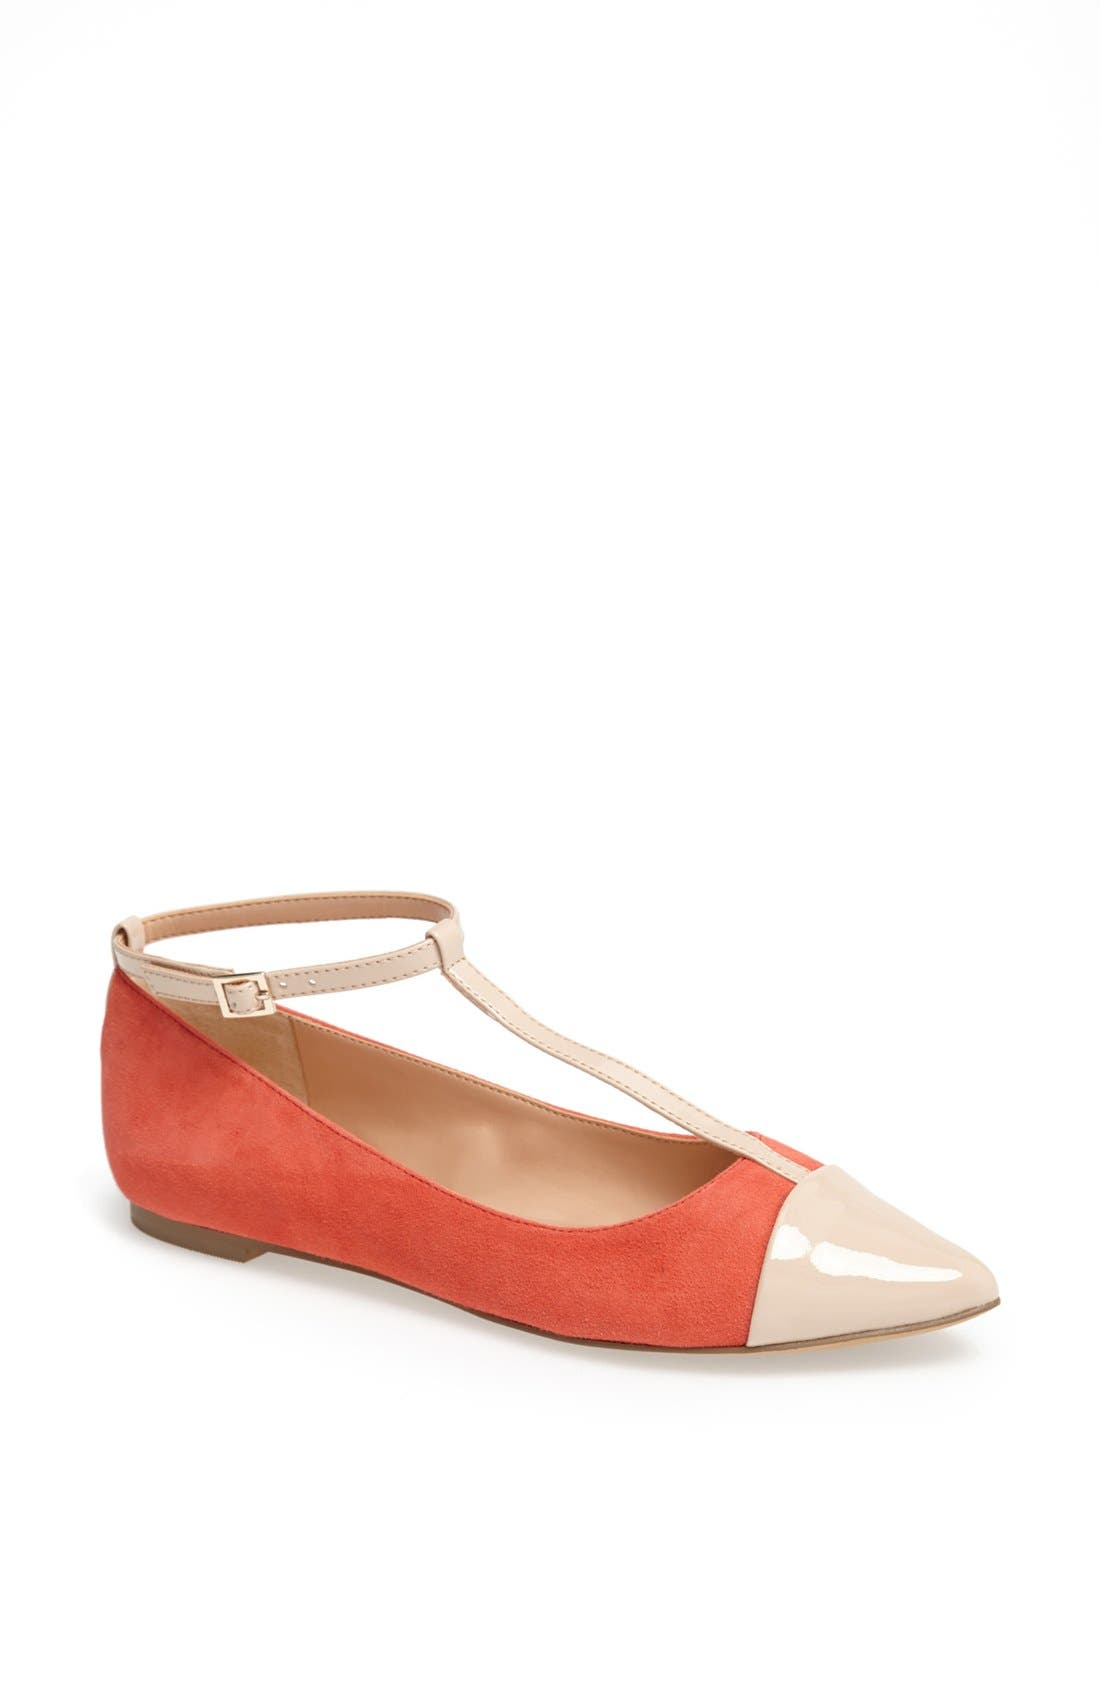 ,                             Julianne Hough for Sole Society 'Addy' Flat,                             Main thumbnail 45, color,                             840